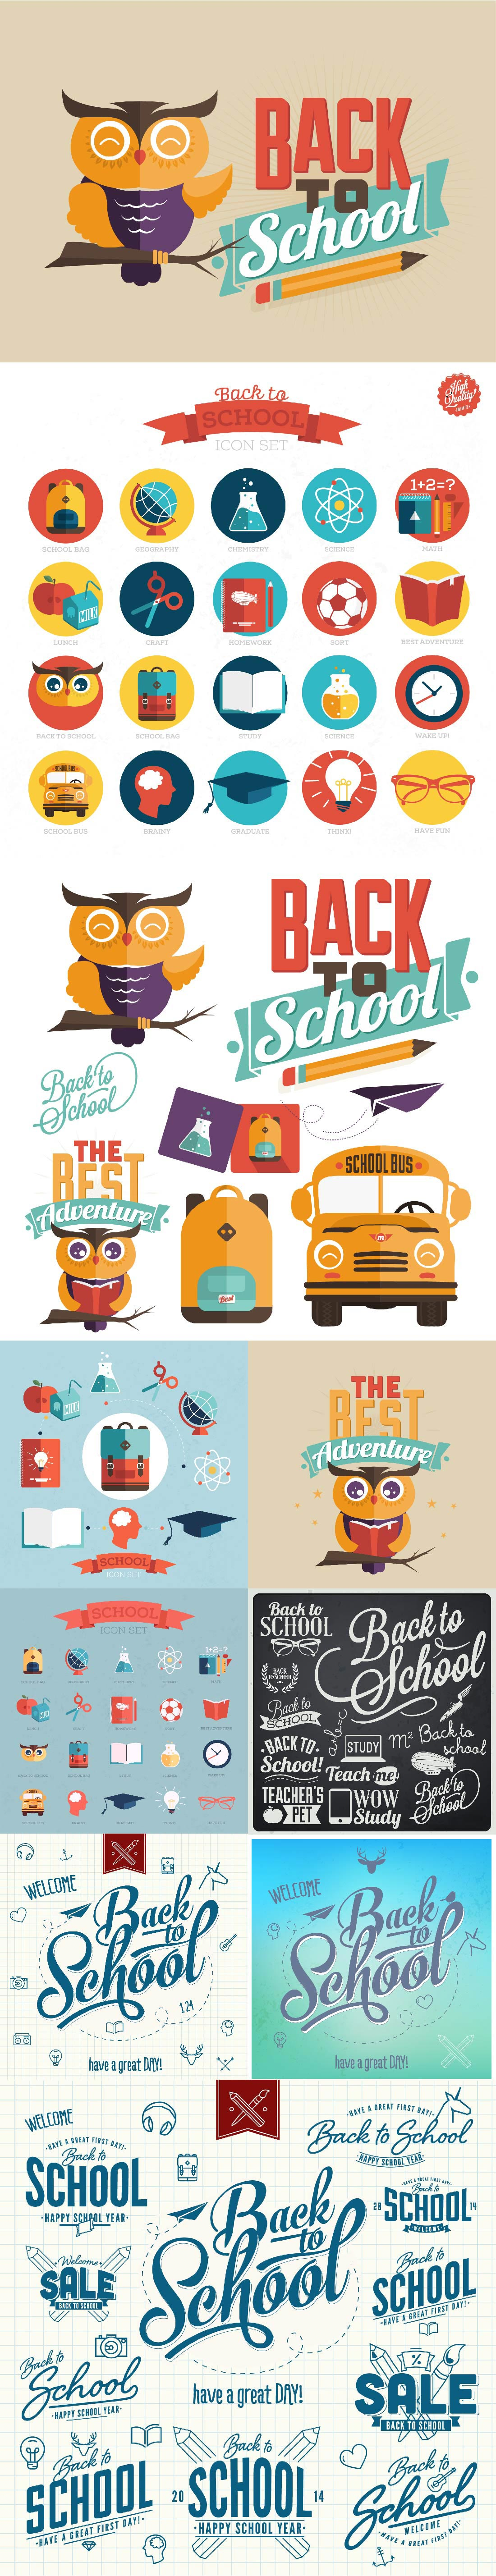 500+ Premium Vectors Collection